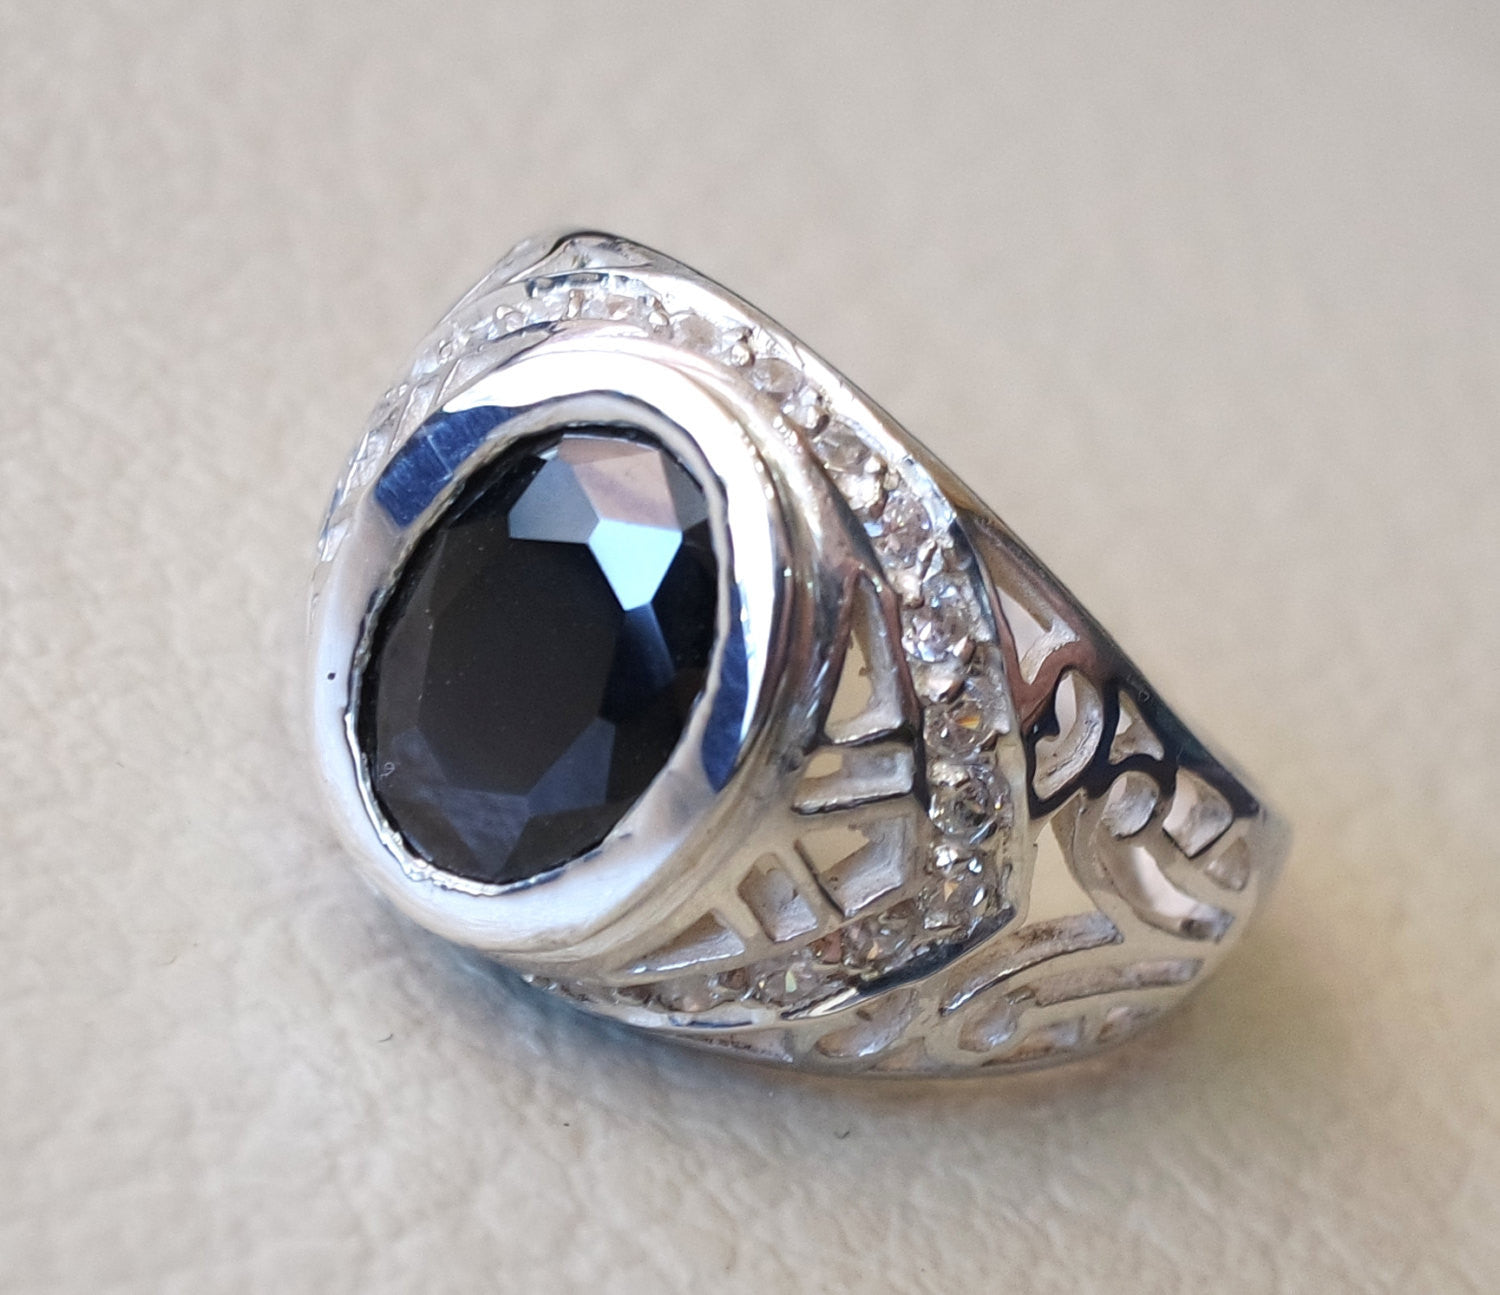 Black color cubic zirconia stone ring sterling silver 925 unisex all sizes white cubic zircon free shipping oval synthetic gemstone jewelry